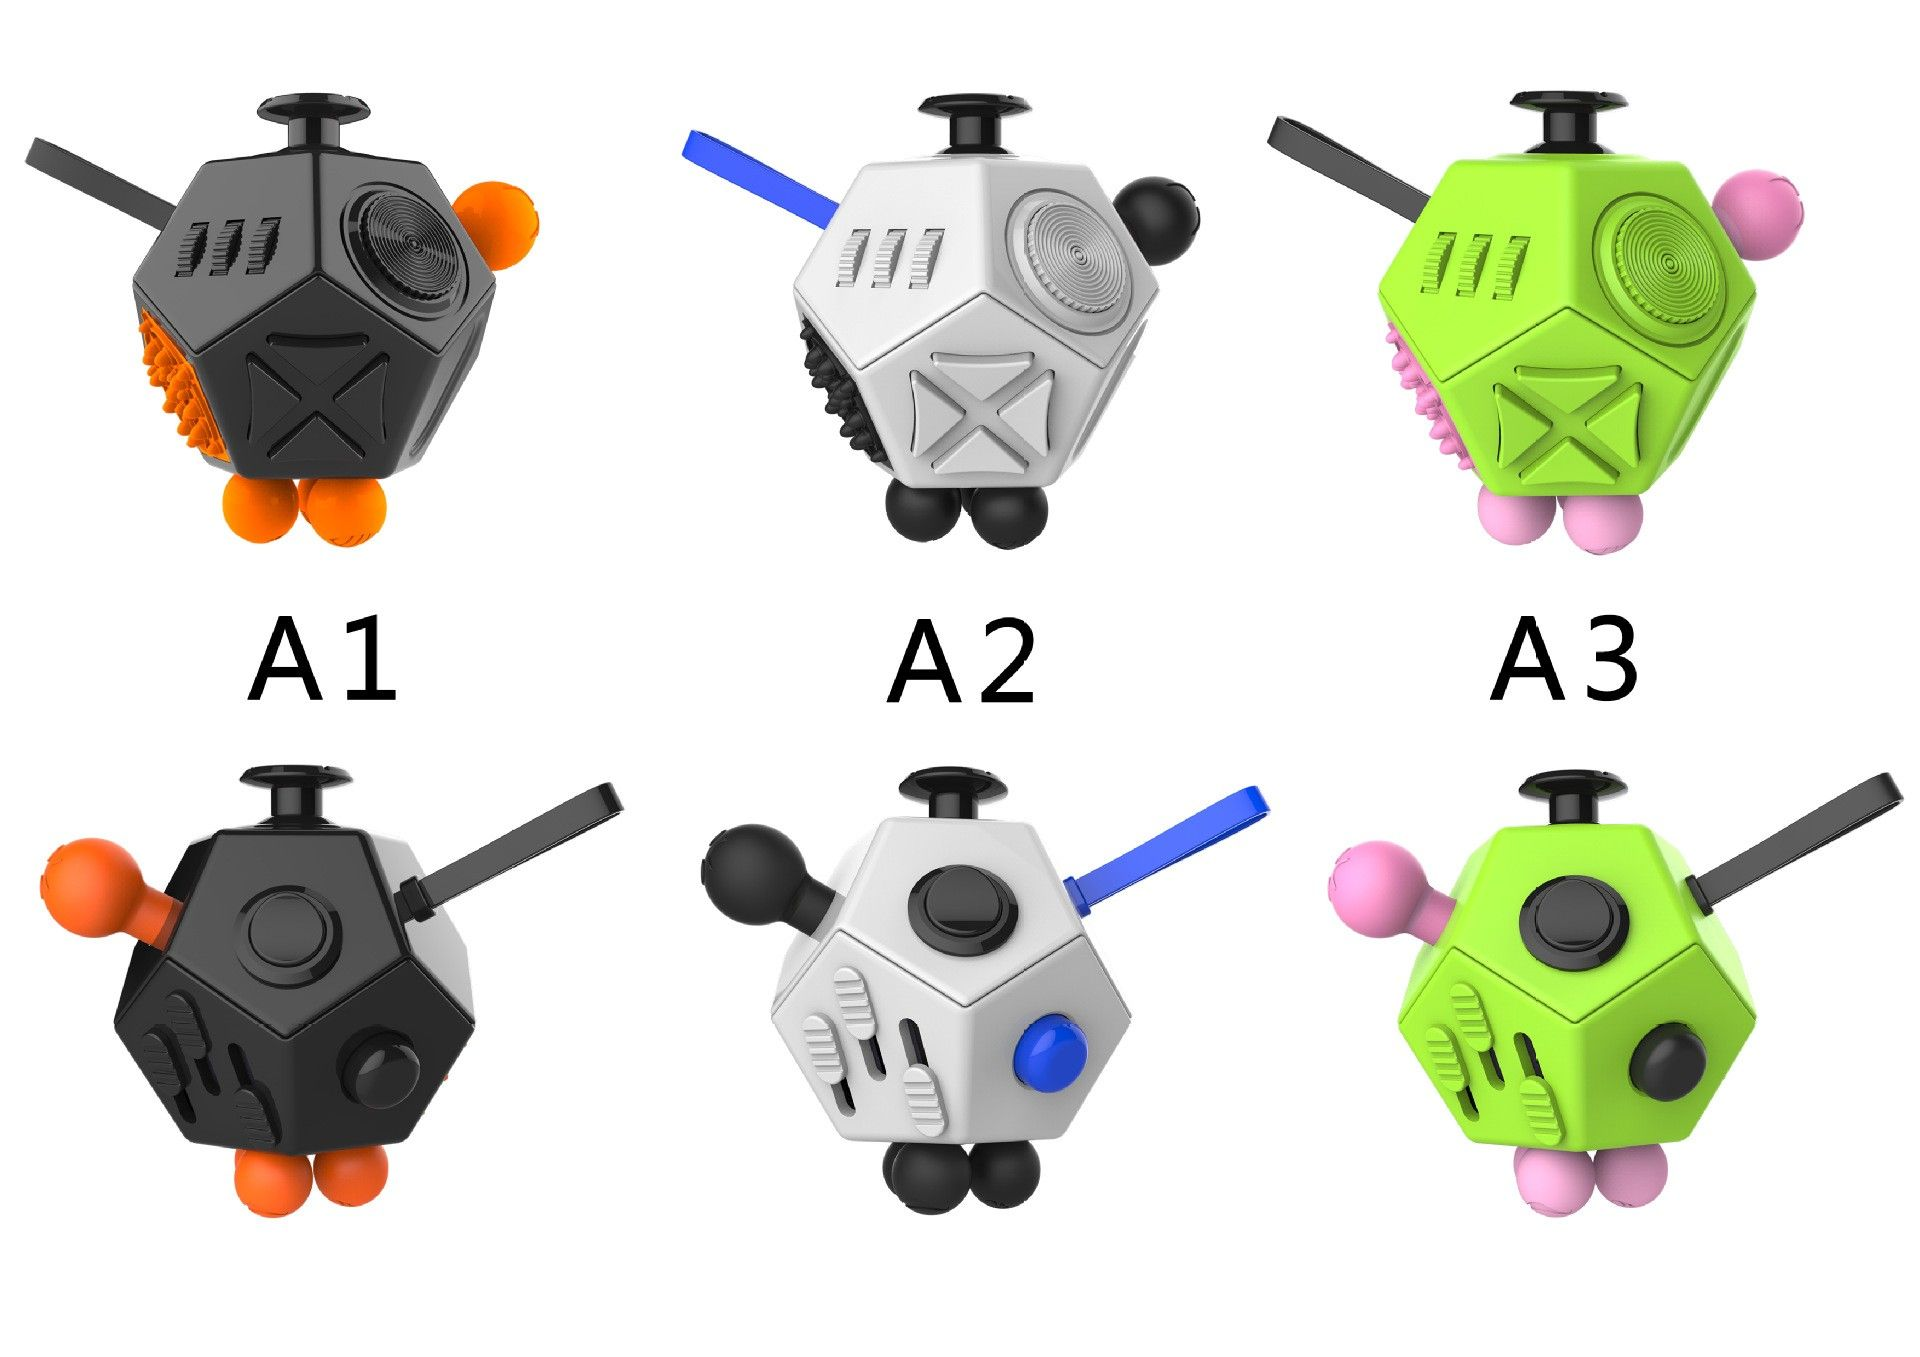 Factory Wholesale 12 Side Magic Fidget Cube Dice Desk Toy Mixed Color Http Www Ogodeal Com Factory Wholesale 12 Side Magic Stress Cube Fidget Cube Desk Toys